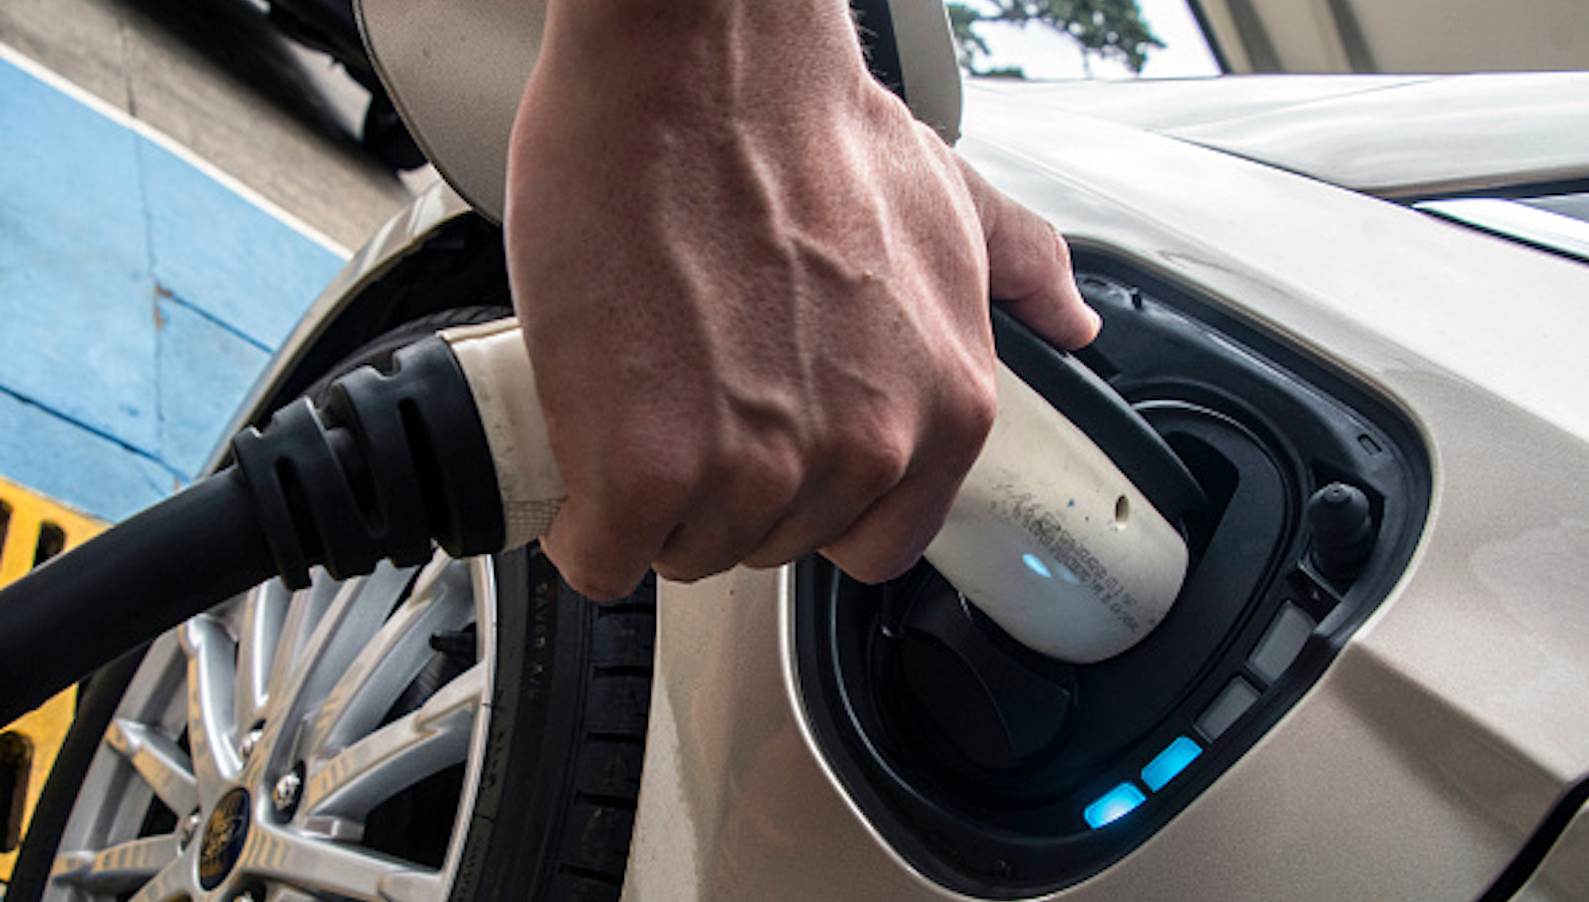 Electric car batteries with 5-minute charging times produced